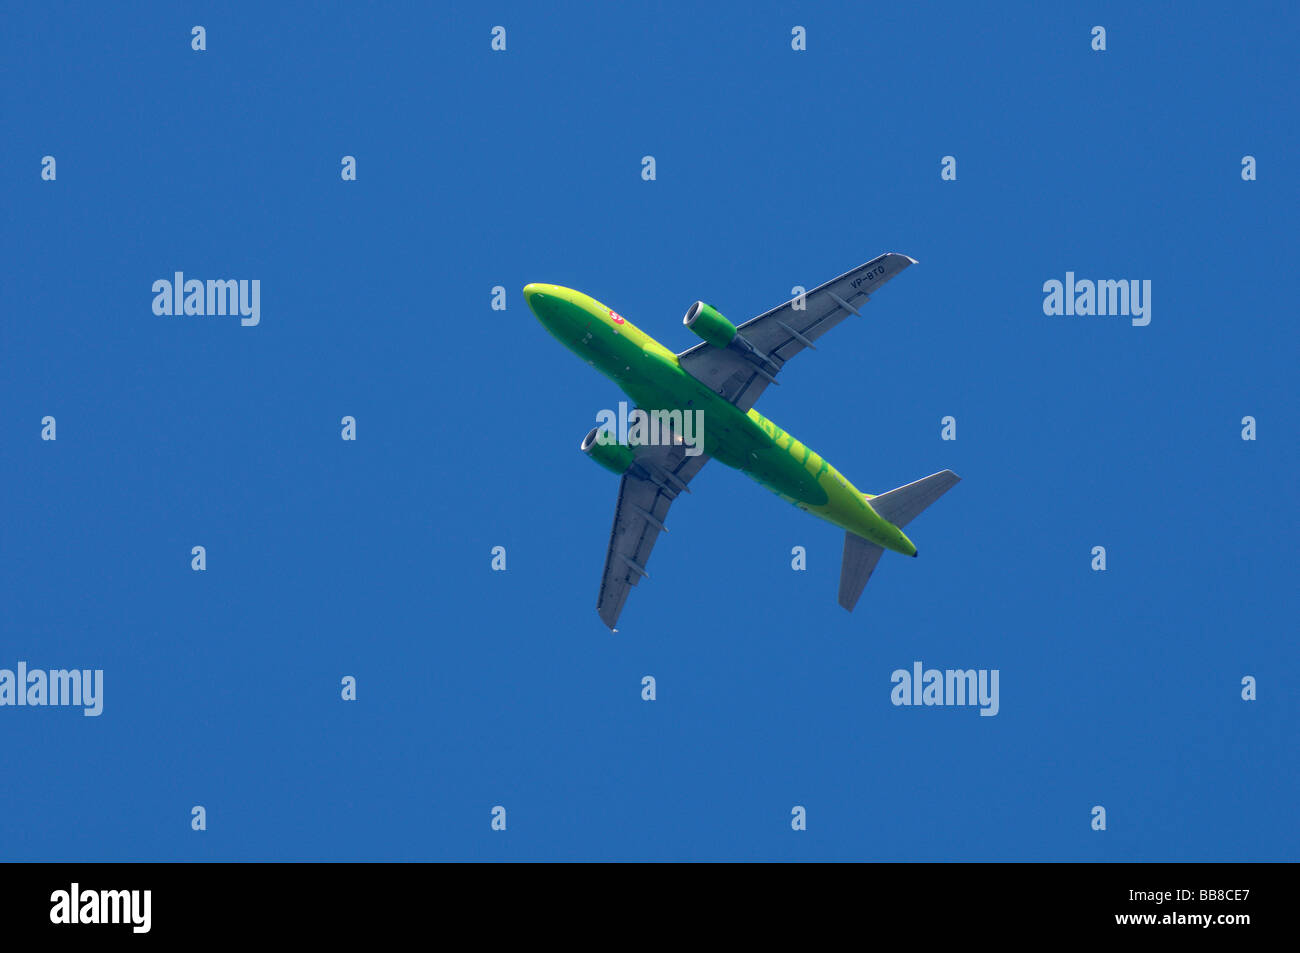 Russian airplane Airbus A319-114 of Siberia Airlines, S7, climb flight, green airplane against blue sky - Stock Image